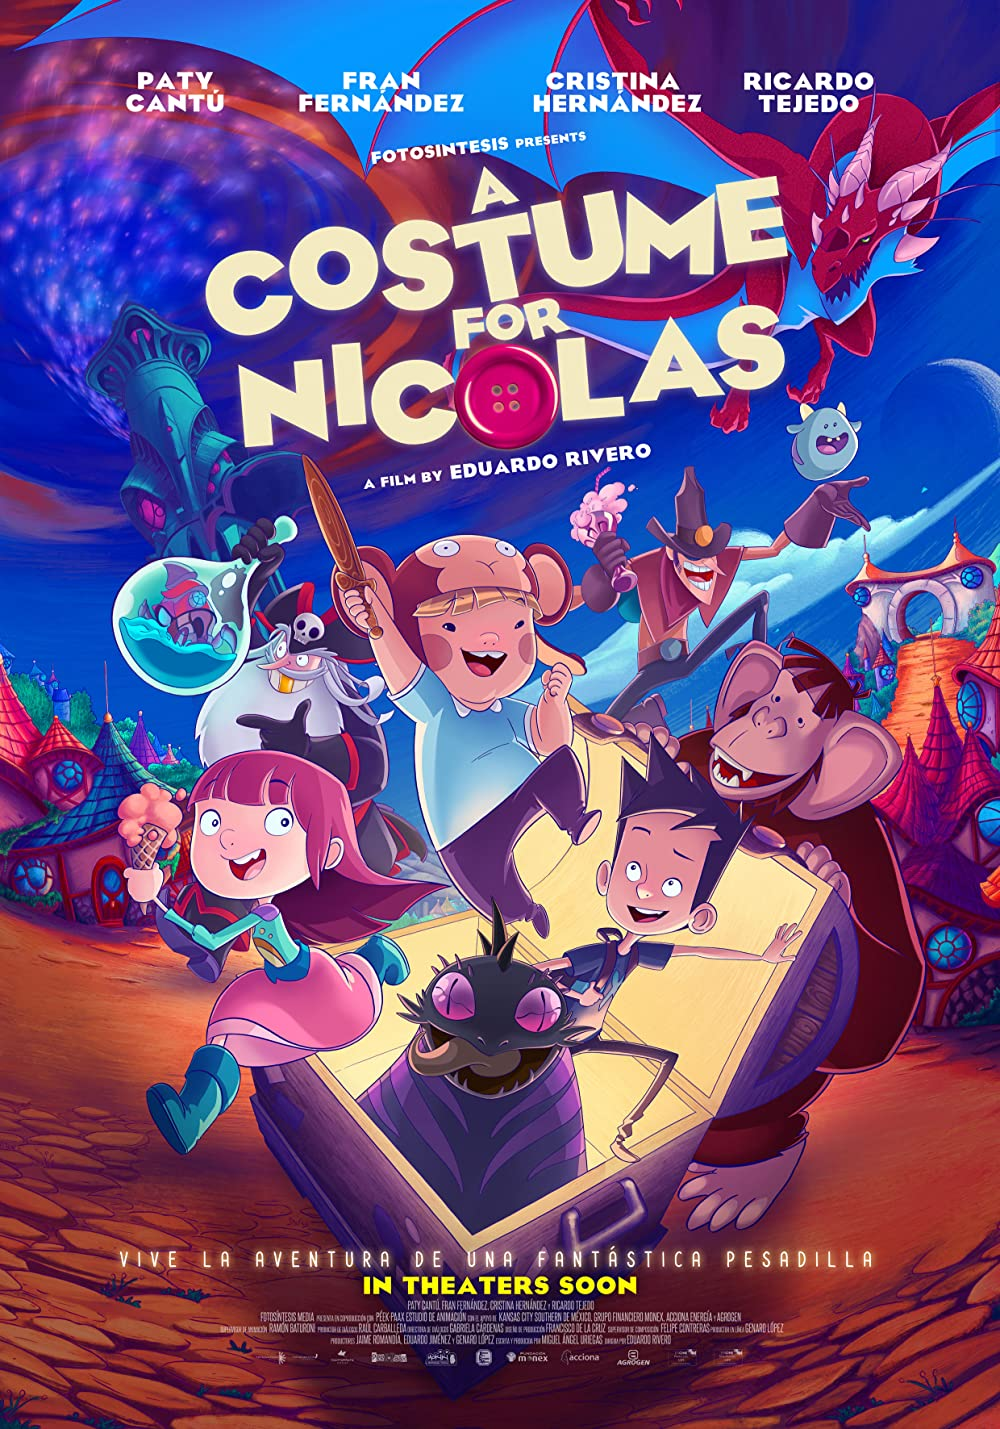 Watch Movie A Costume for Nicholas